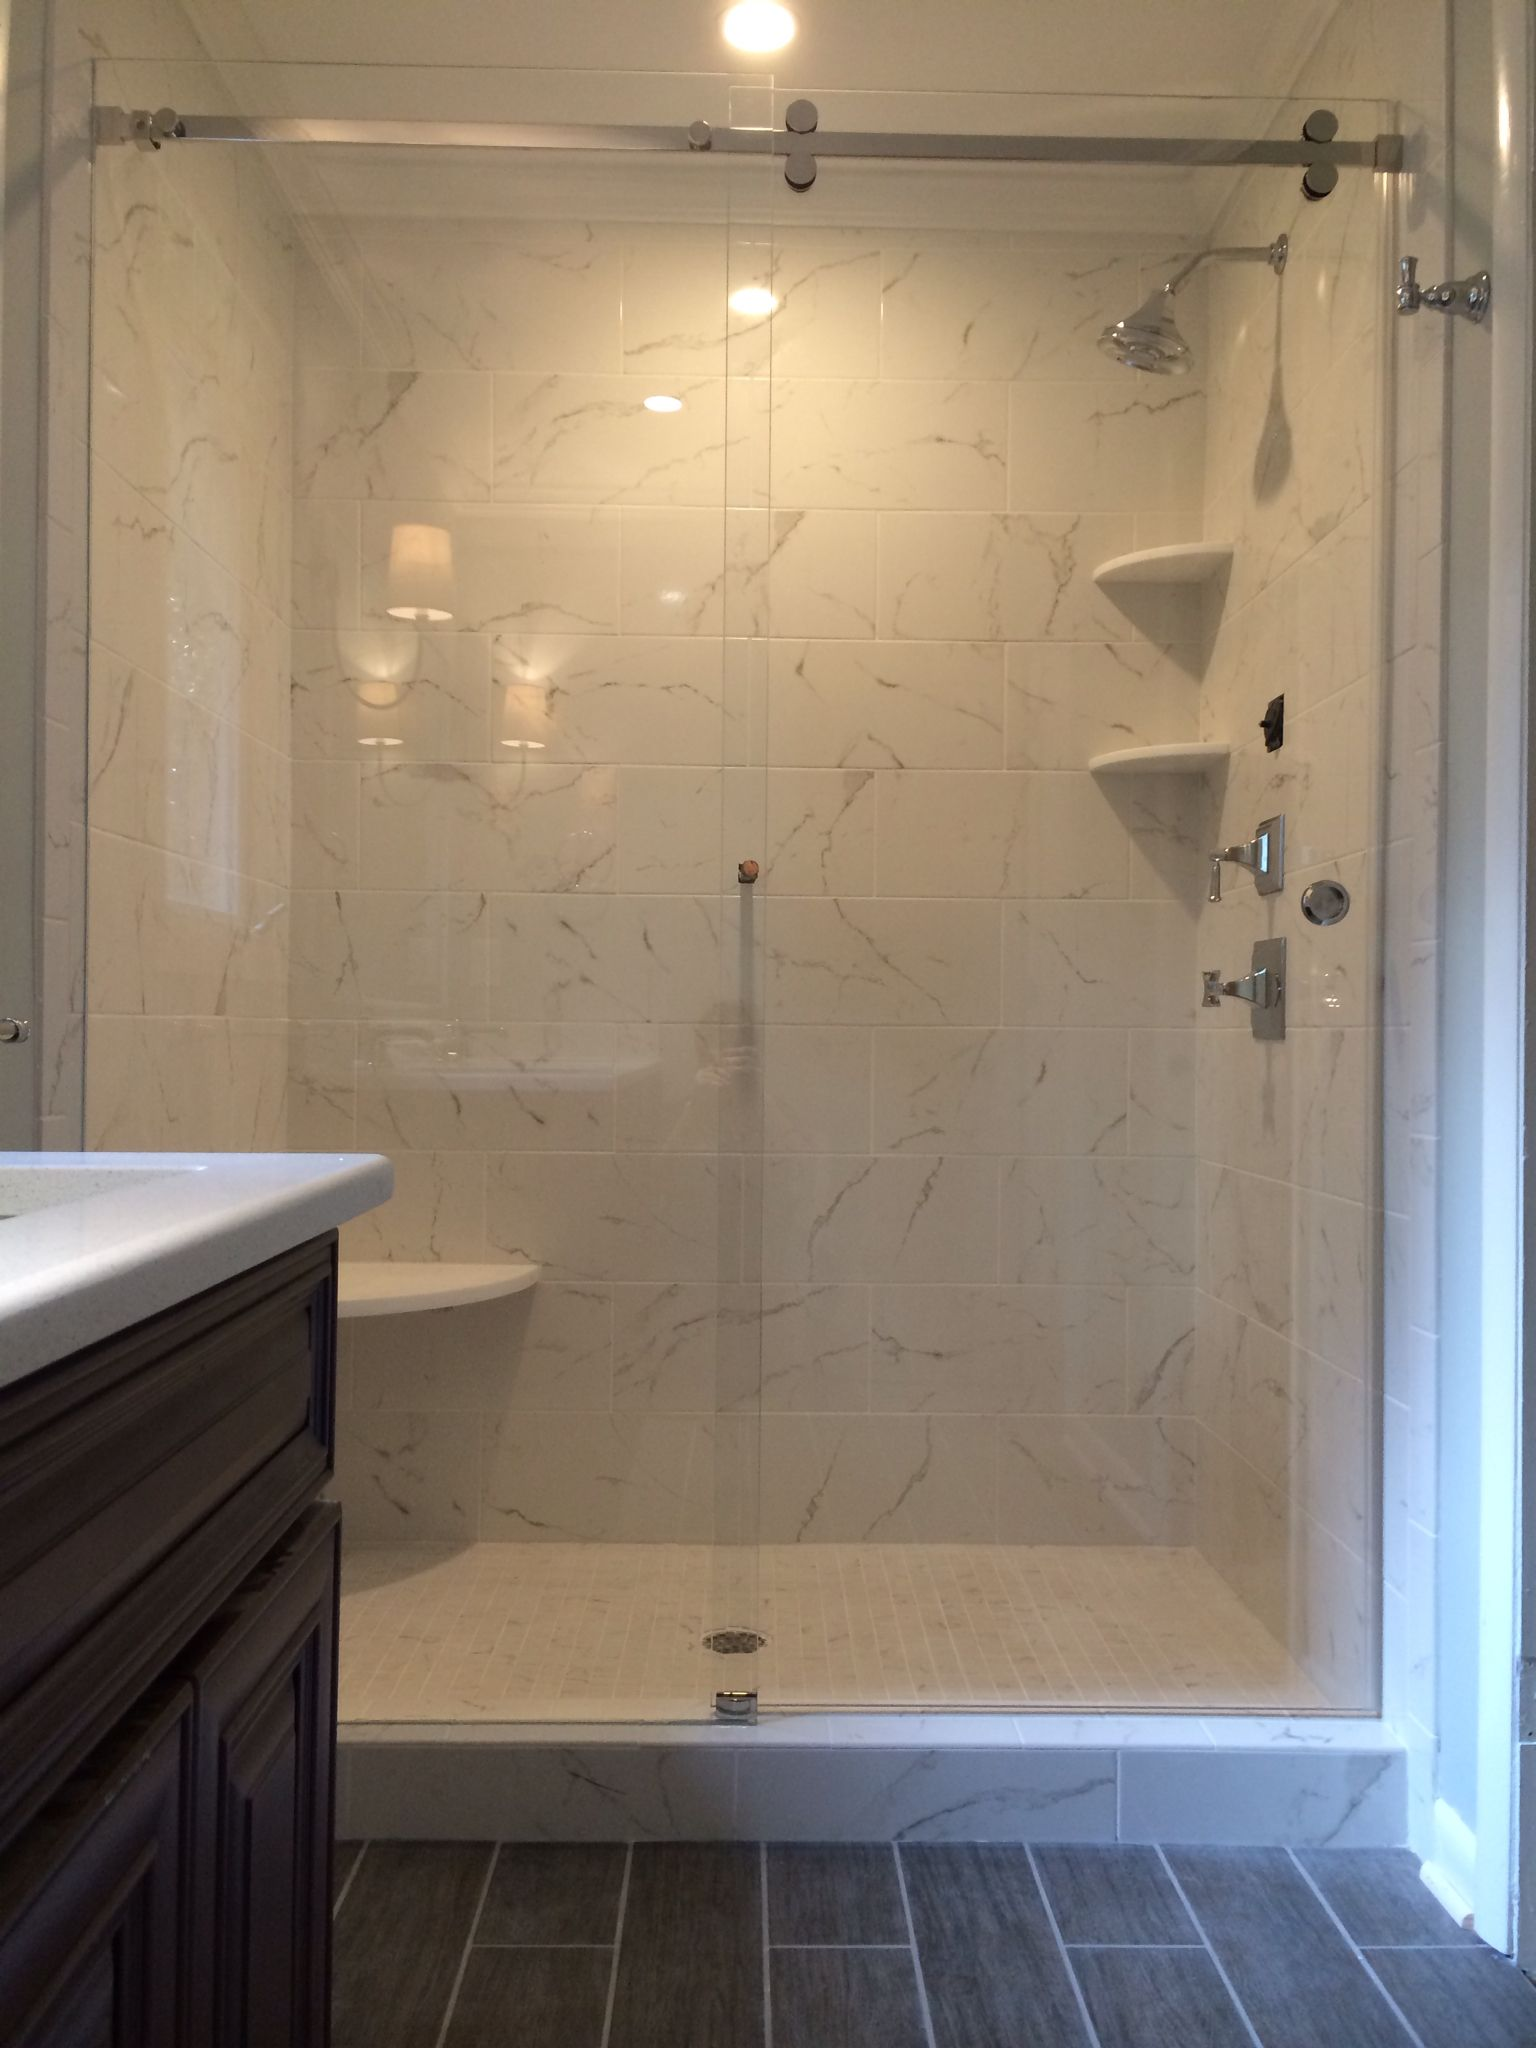 Serenity Sliding Shower Enclosure Is An All Glass System With